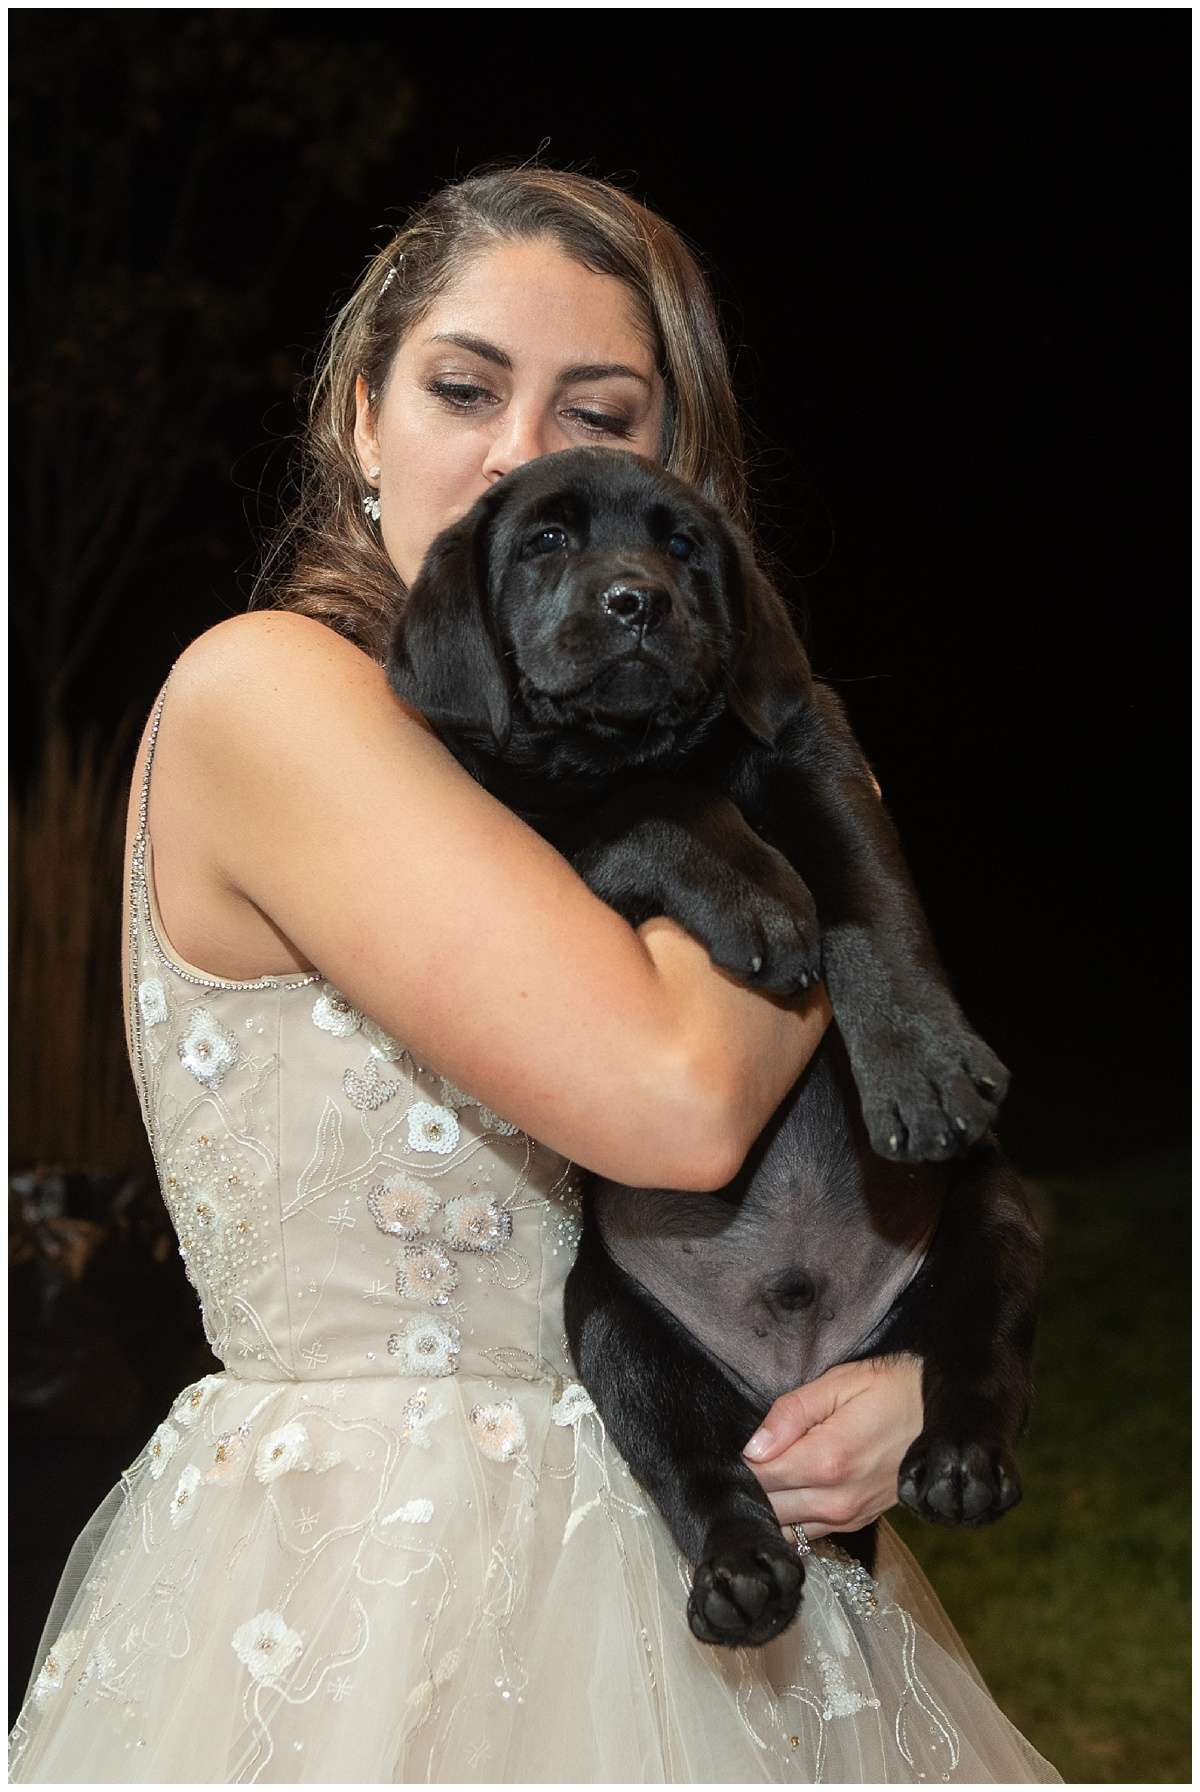 a bride wearing a ballgown and snuggling a black Labrador puppy